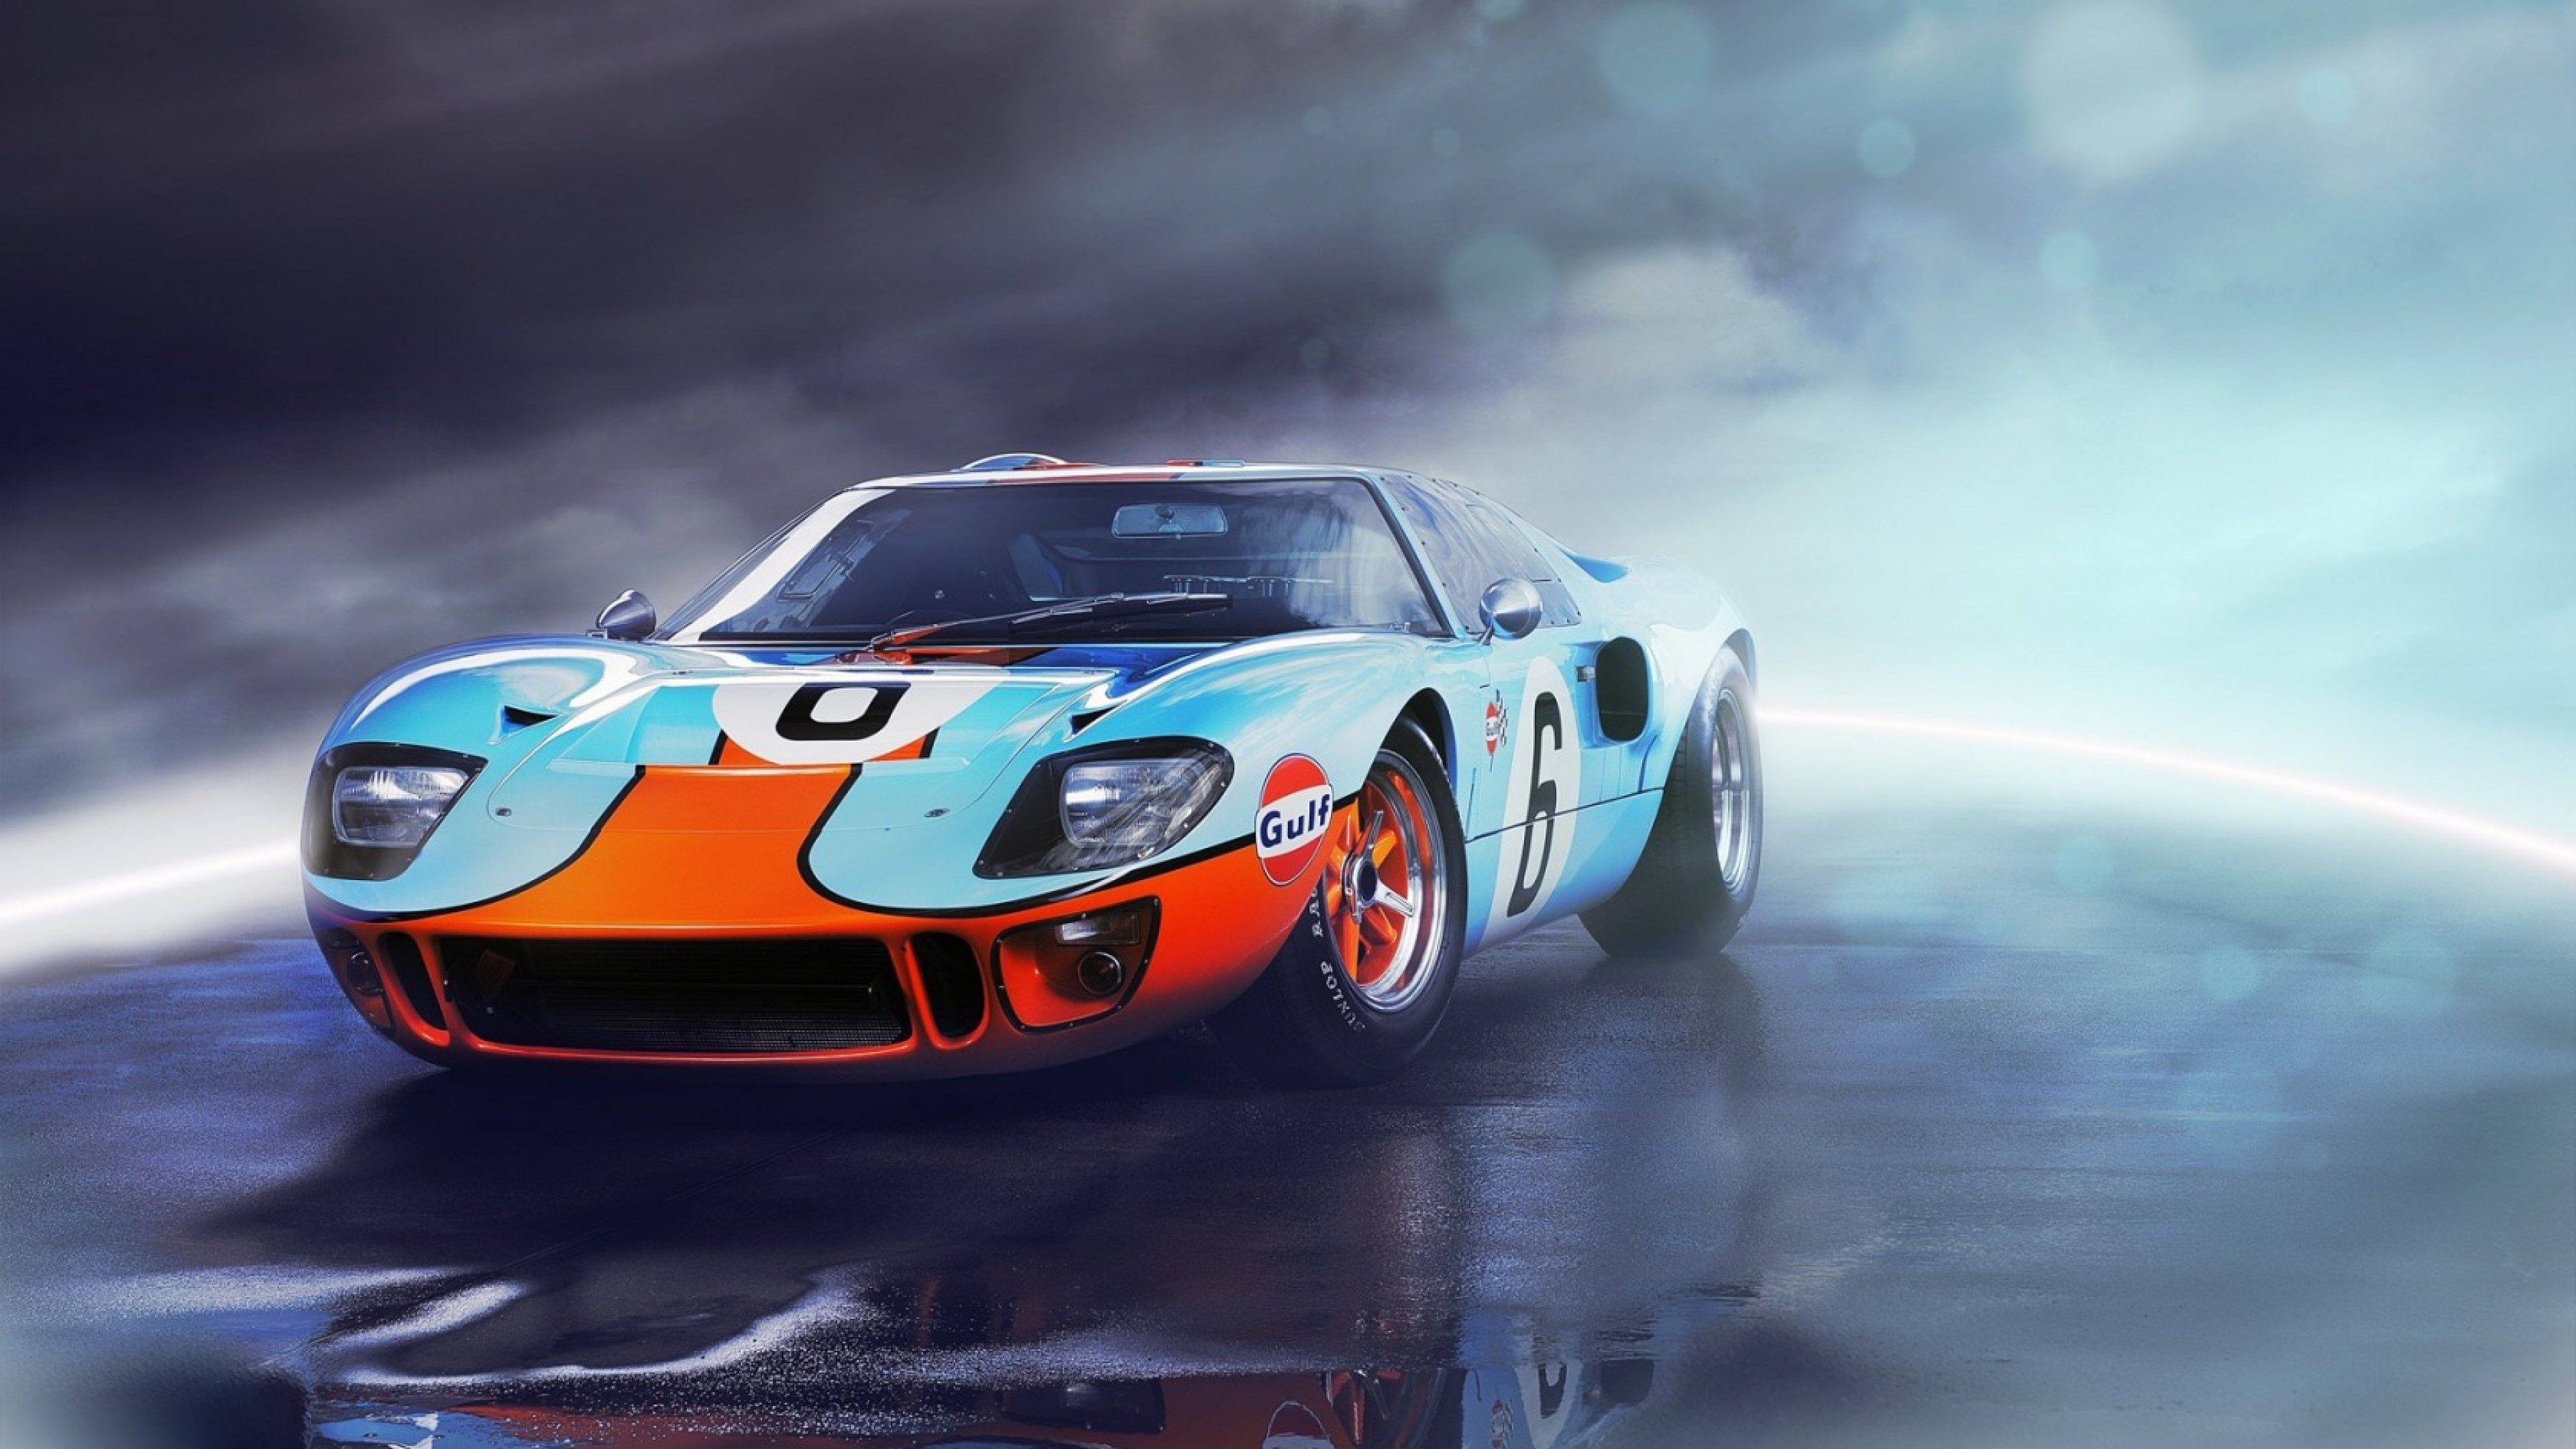 Free Images Ford Wallpaper Hd Car Wallpapers Ford Gt Ford Gt40